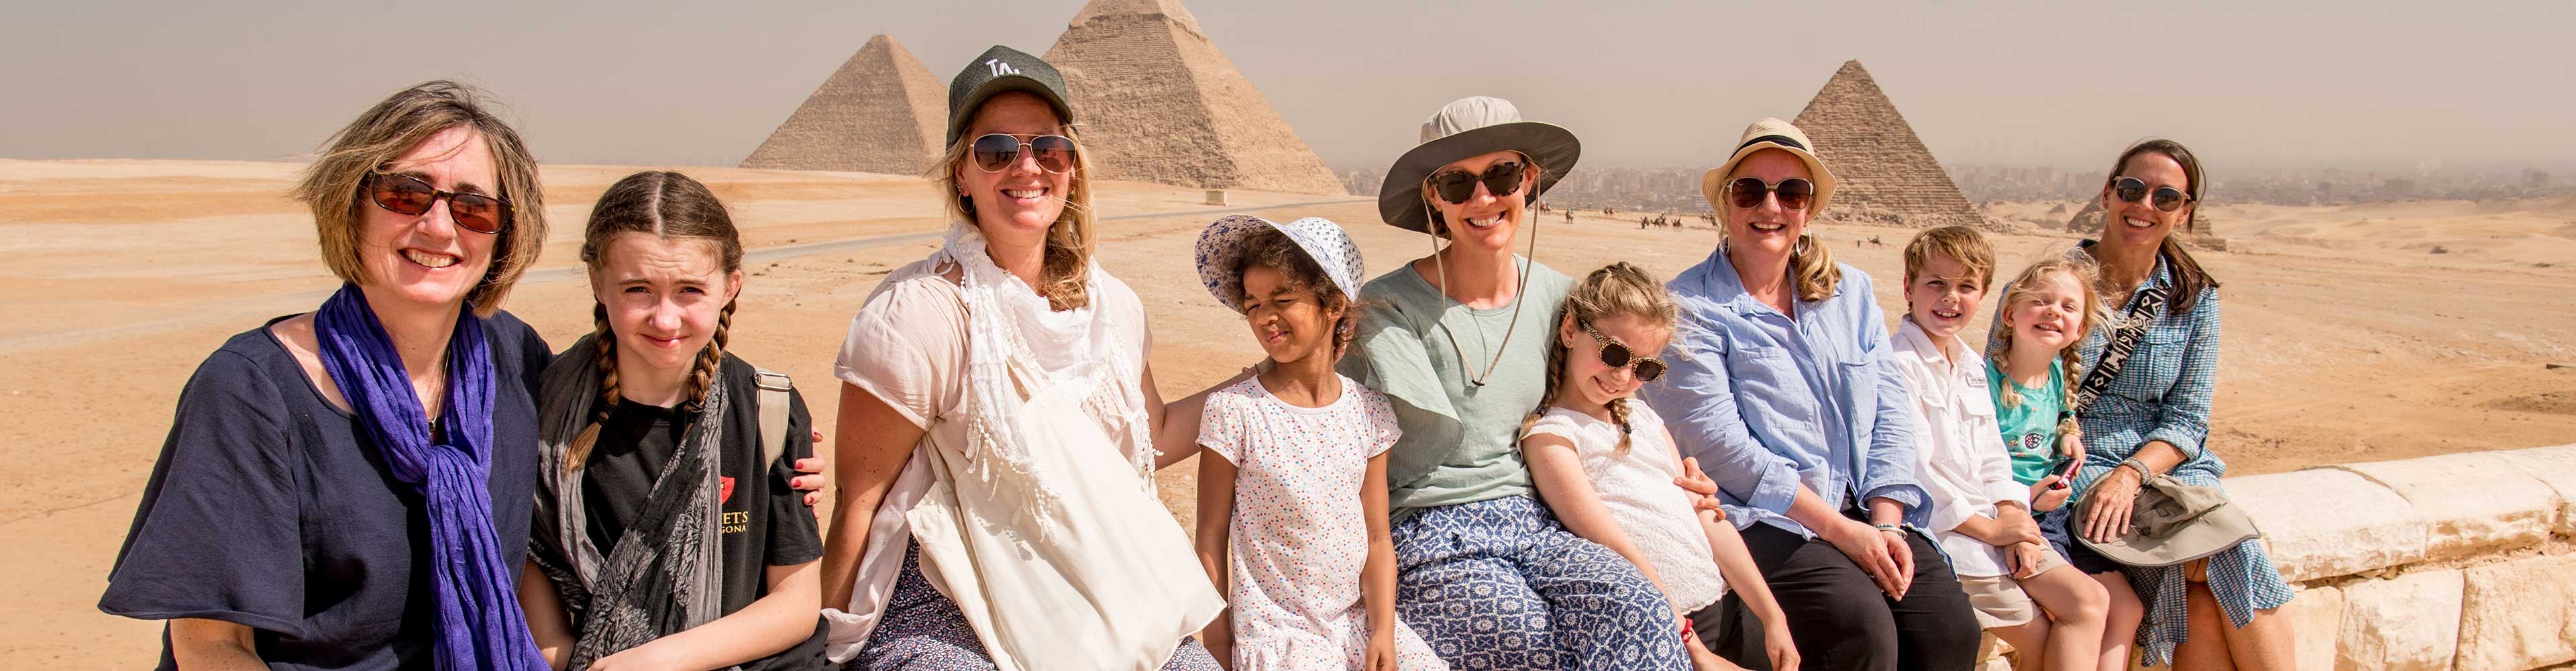 Egypt Family Holiday for Solo Parents